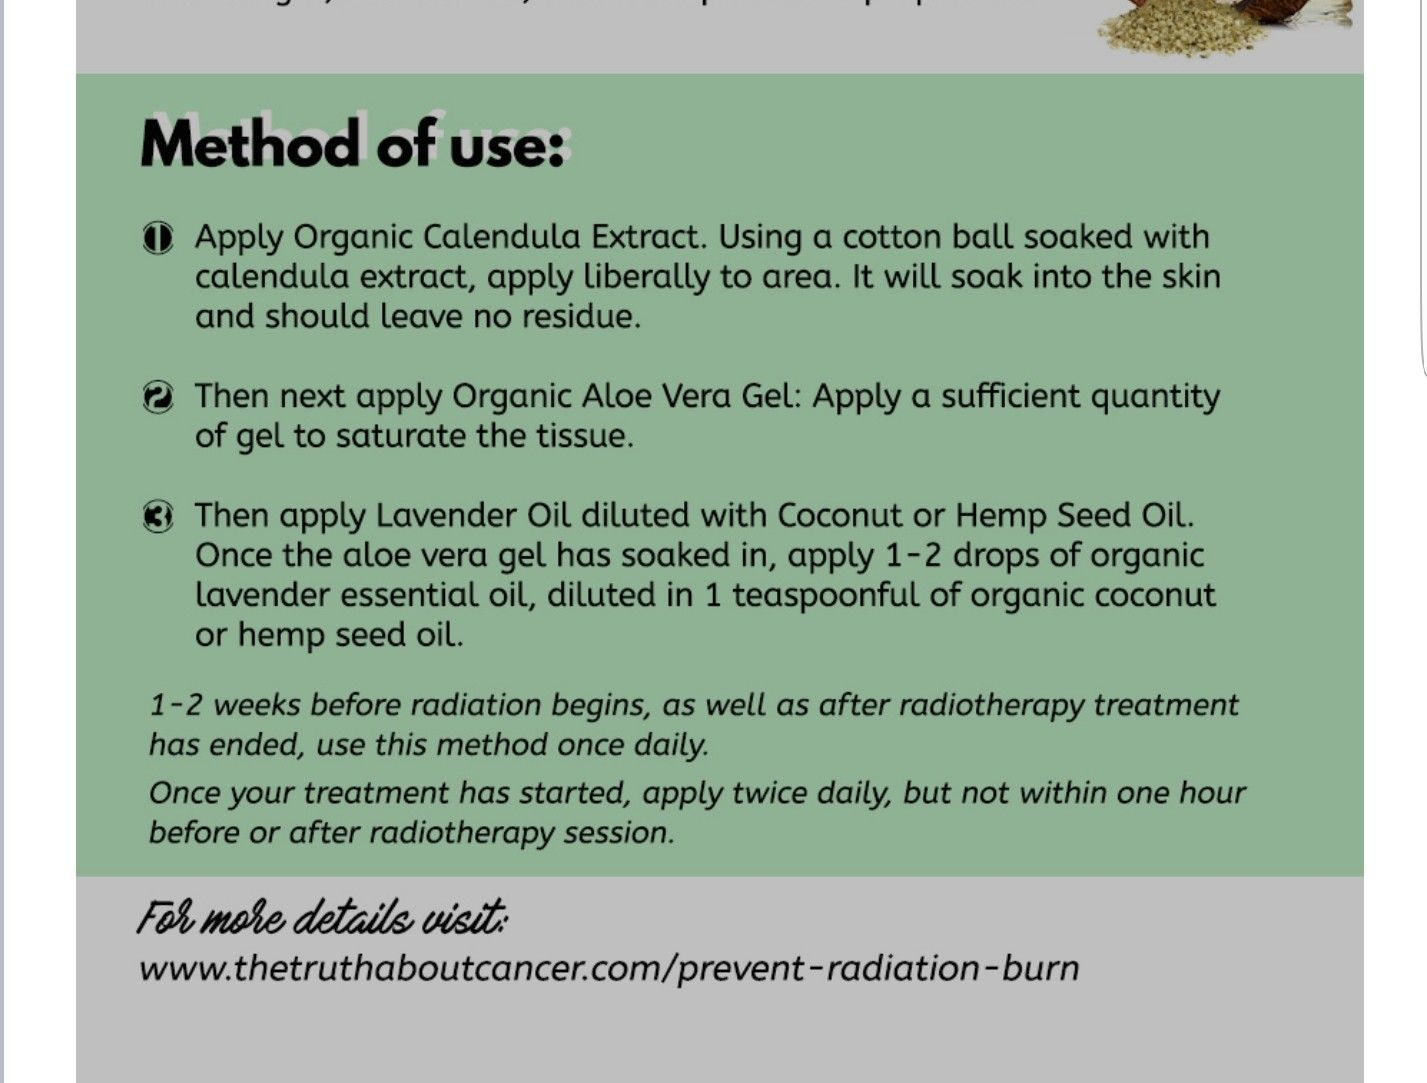 Pin By Shirley Arevalo On Prevent Radiation Burns Organic Aloe Vera Aloe Vera Gel How To Apply